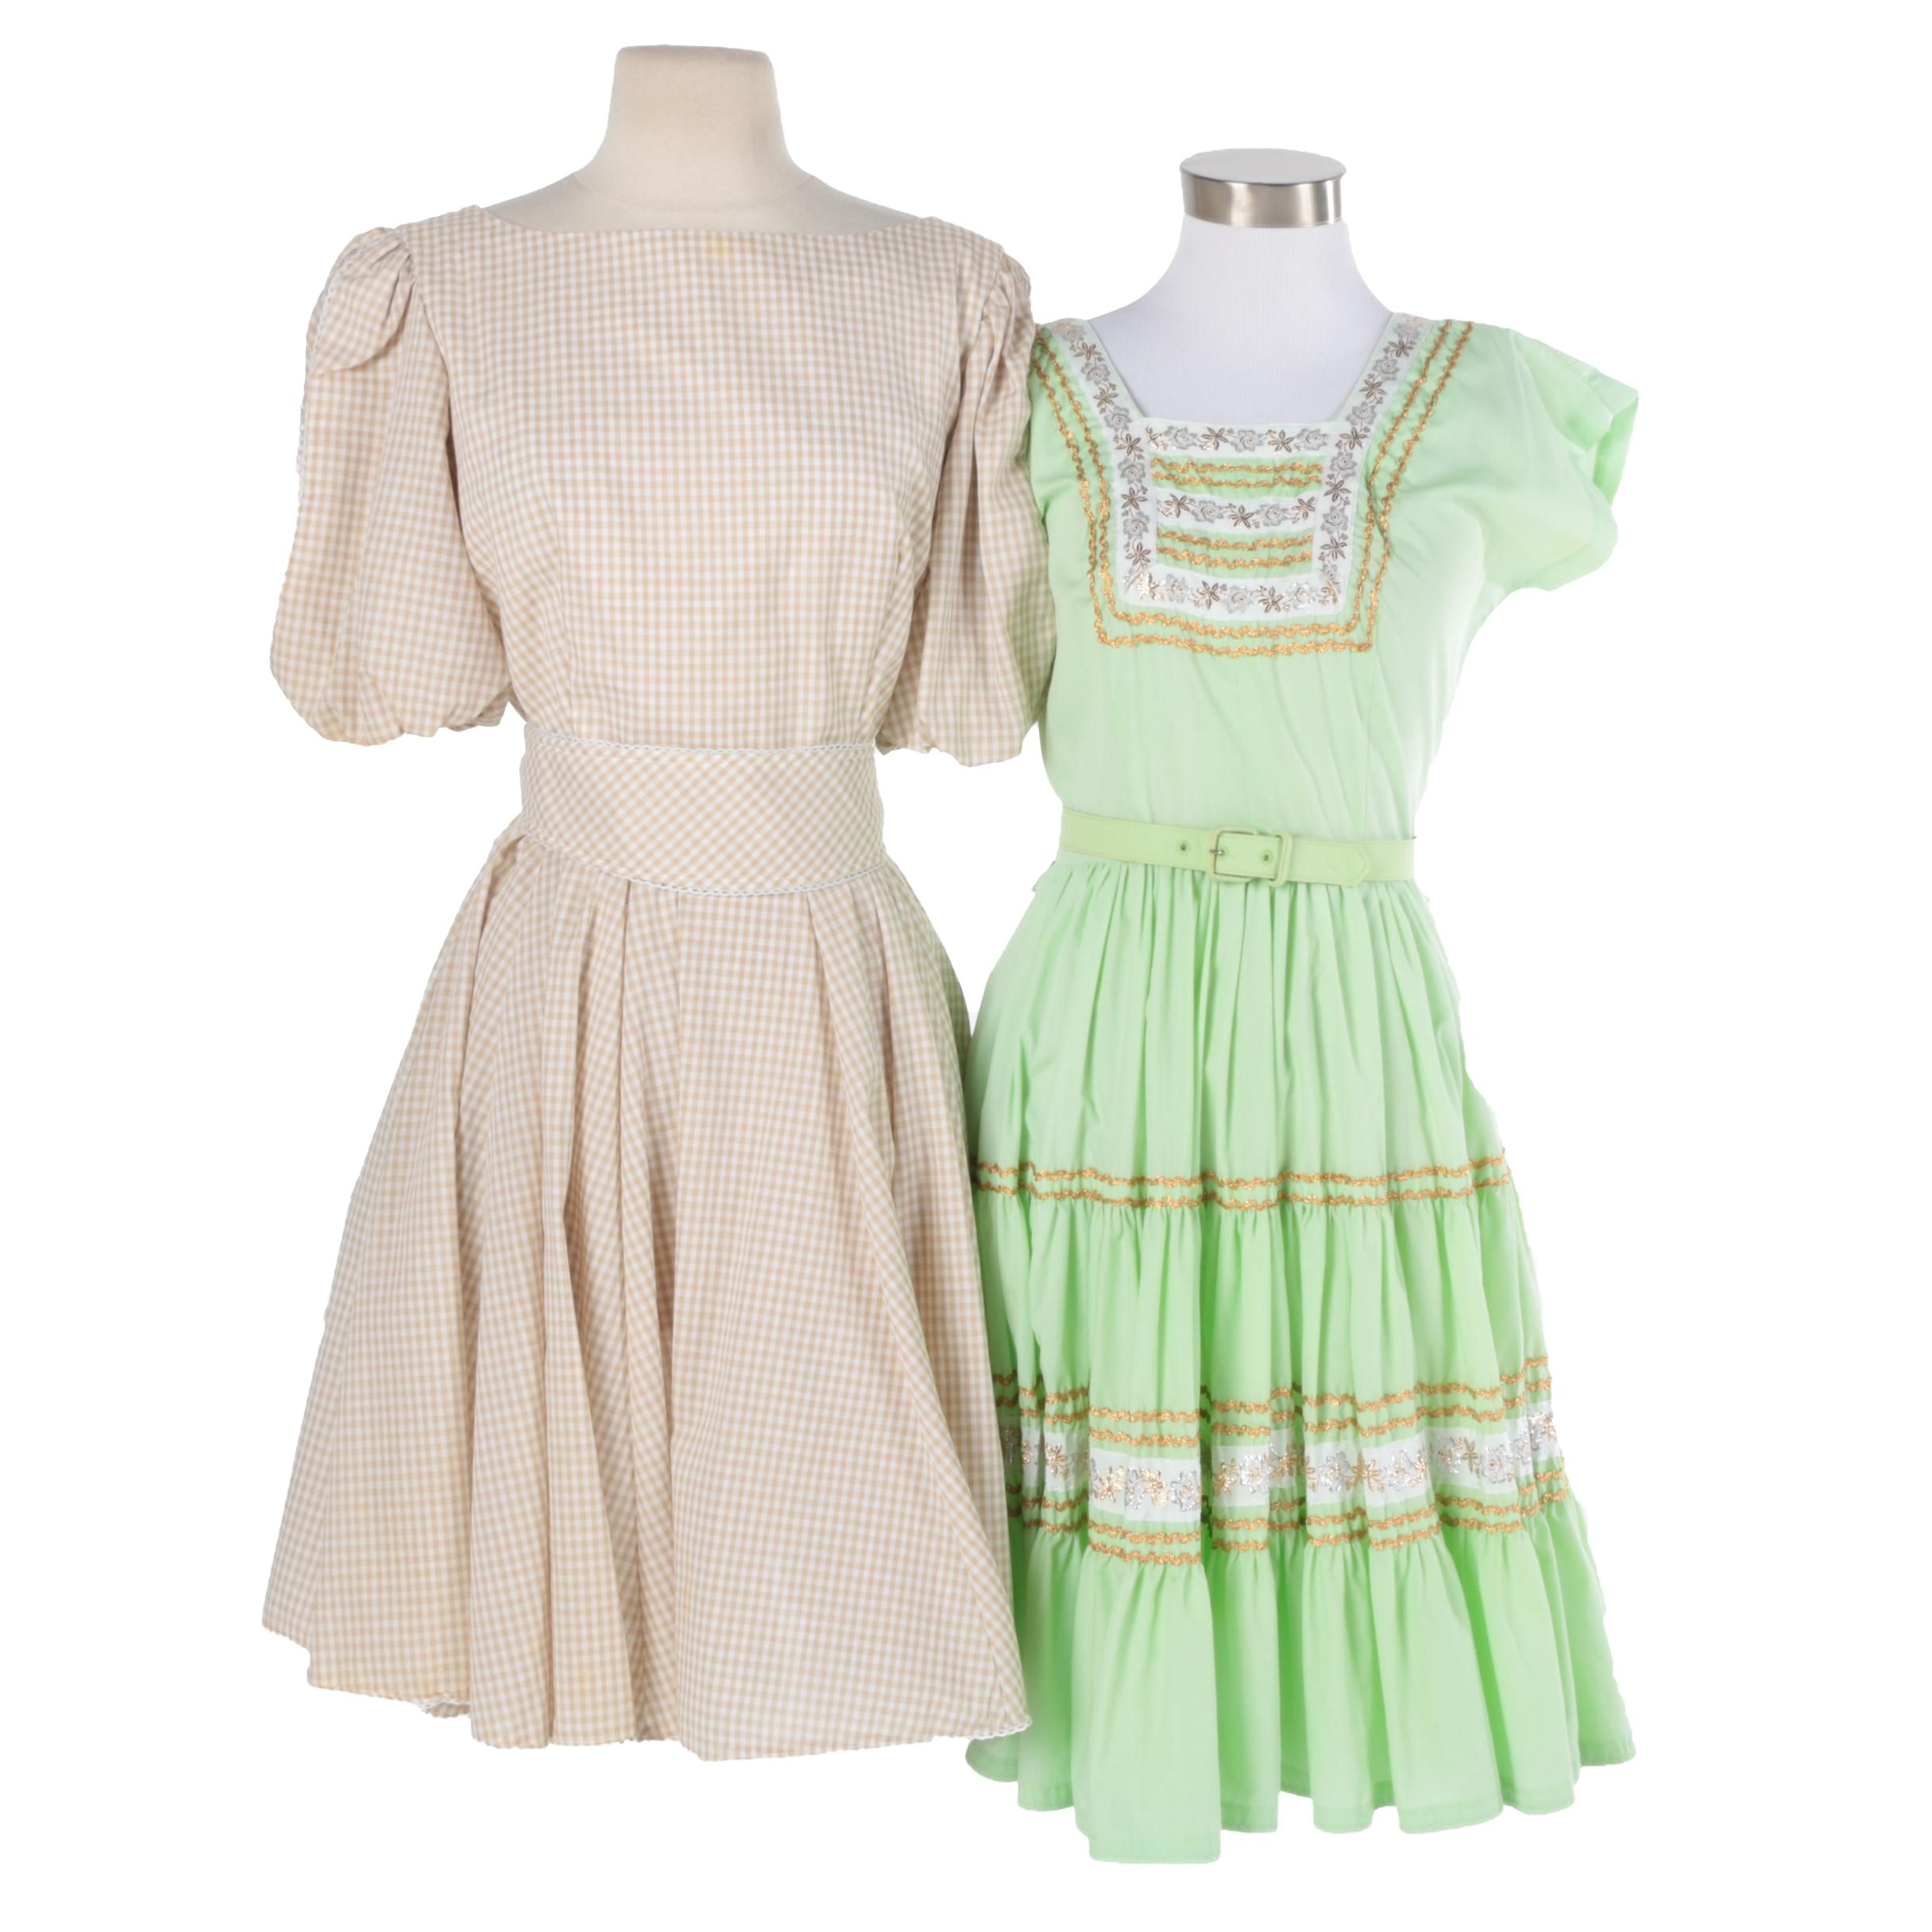 1960s Vintage Square Dancing Dresses Including Bettina of Miami